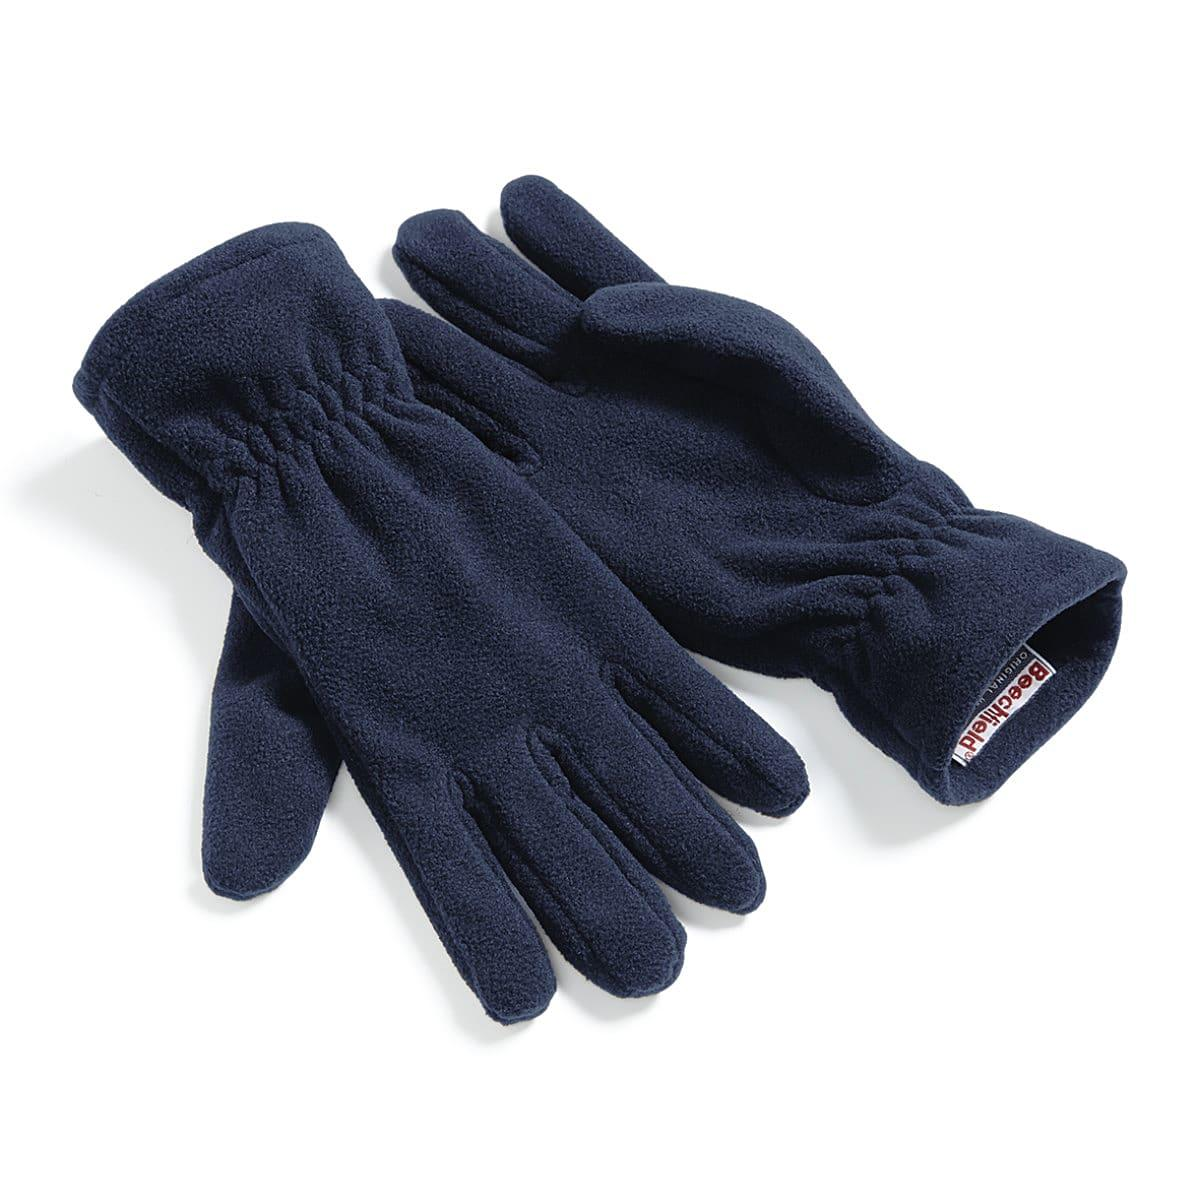 Beechfield Suprafllece Alpine Gloves in French Navy (Product Code: B296)